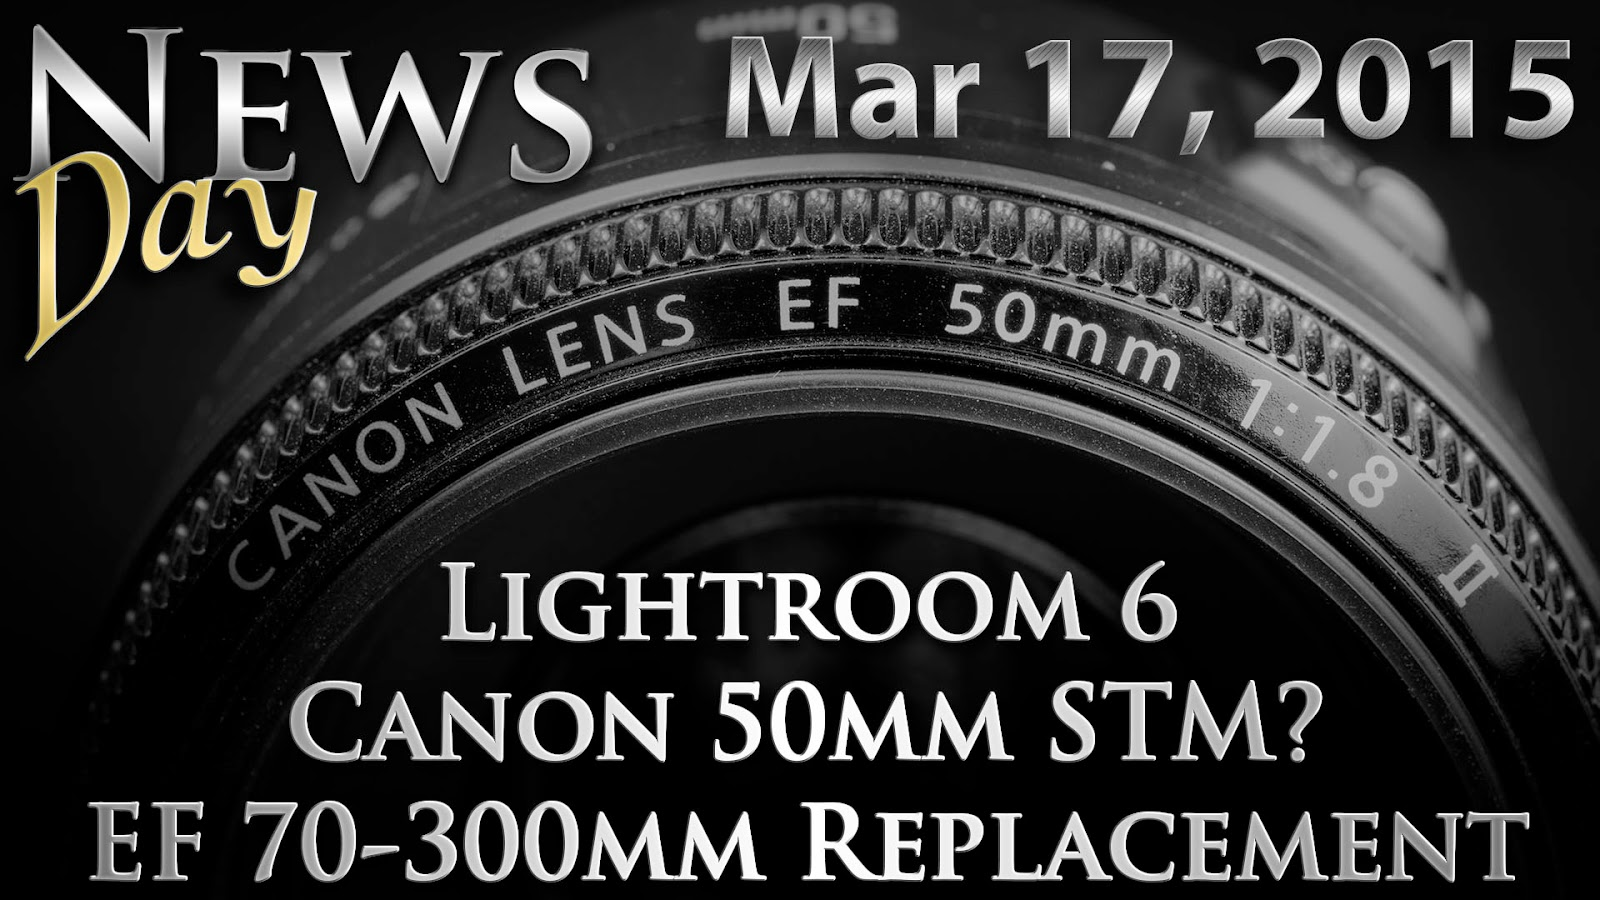 Lightroom 6, Canon 50mm f/1.8 STM, Next L Is A Prime & EF 70-300mm Replacement | News Day